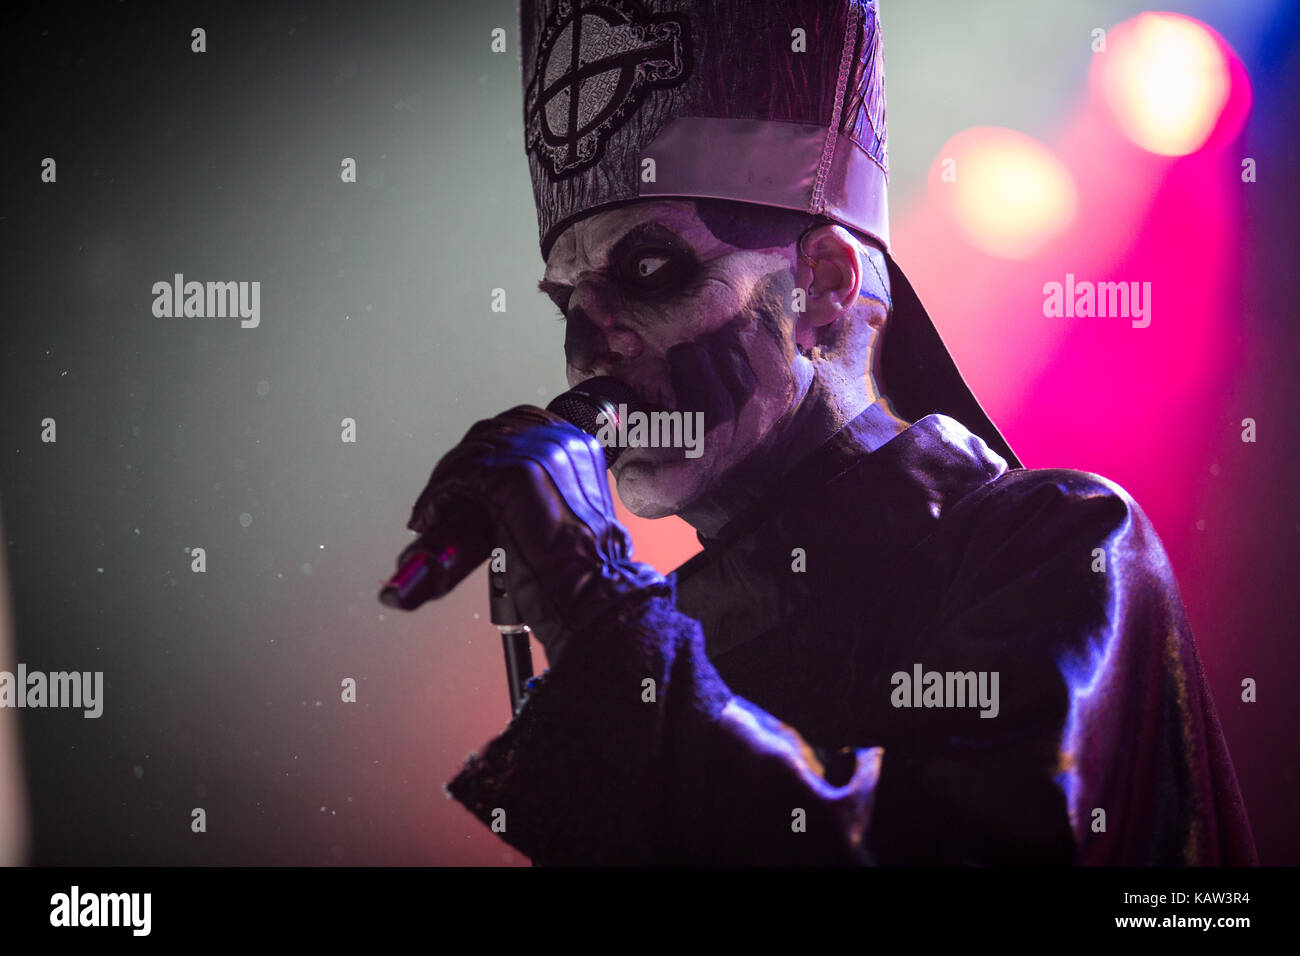 The Swedish heavy metal band Ghost originates from Linköping  The